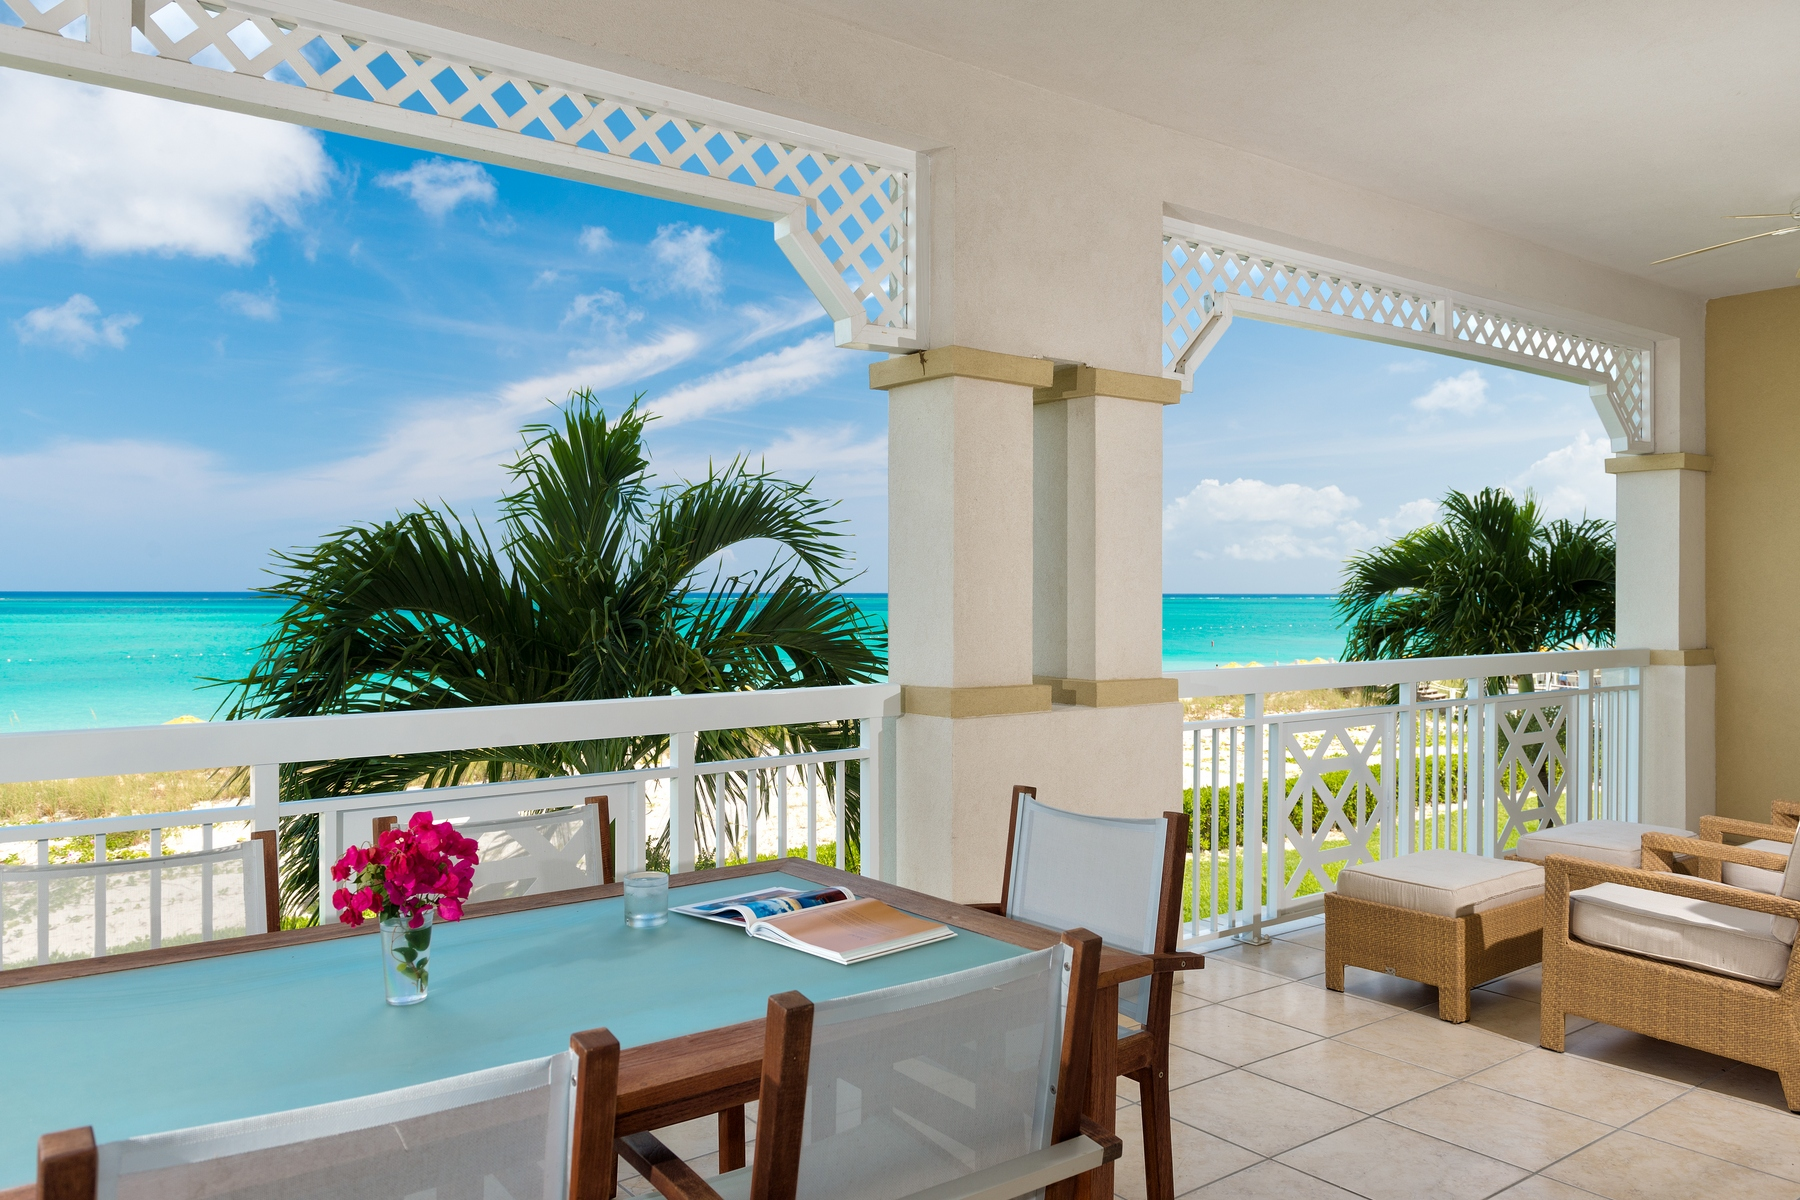 Condominium for Sale at The Alexandra Resort - Suite 2202 Alexandra Resort, Grace Bay, Providenciales Turks And Caicos Islands